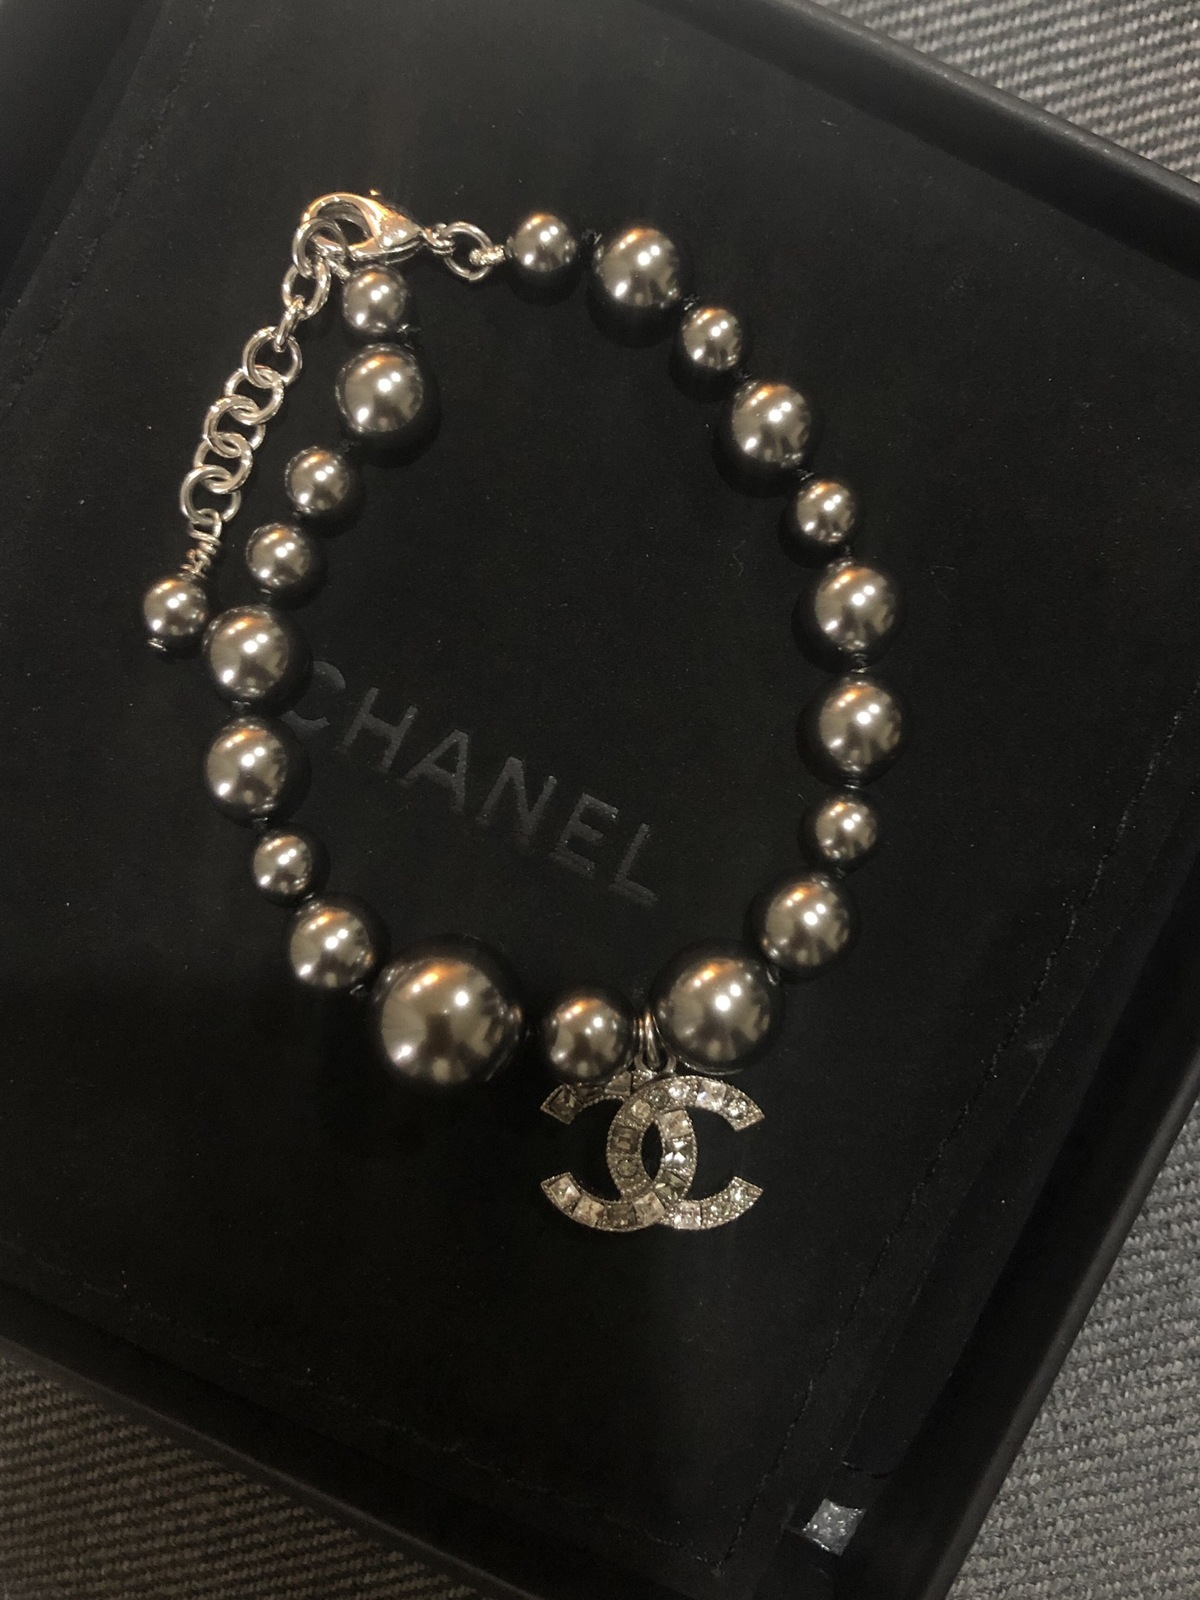 Primary image for 100% Authentic Chanel CC Logo Crystal Gray Pearls Bracelet